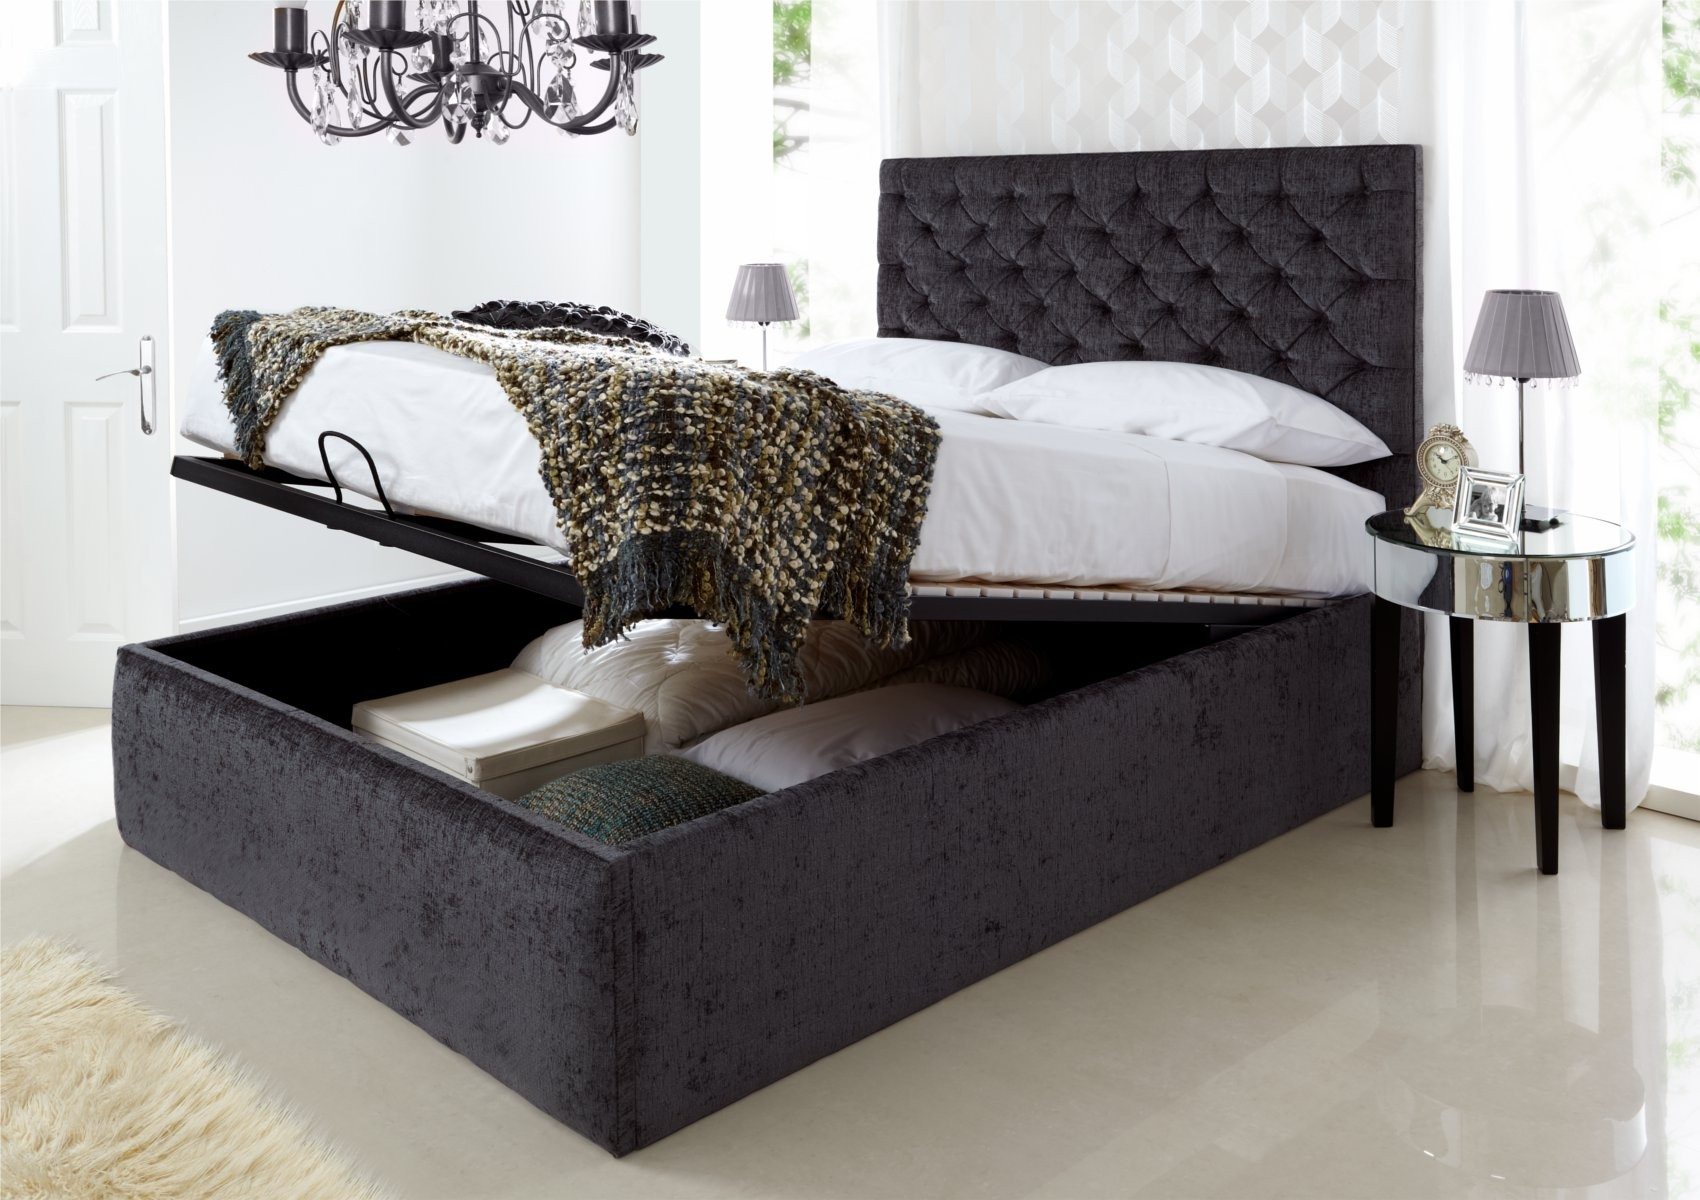 Storage Beds Nyc Inspiration HomesFeed